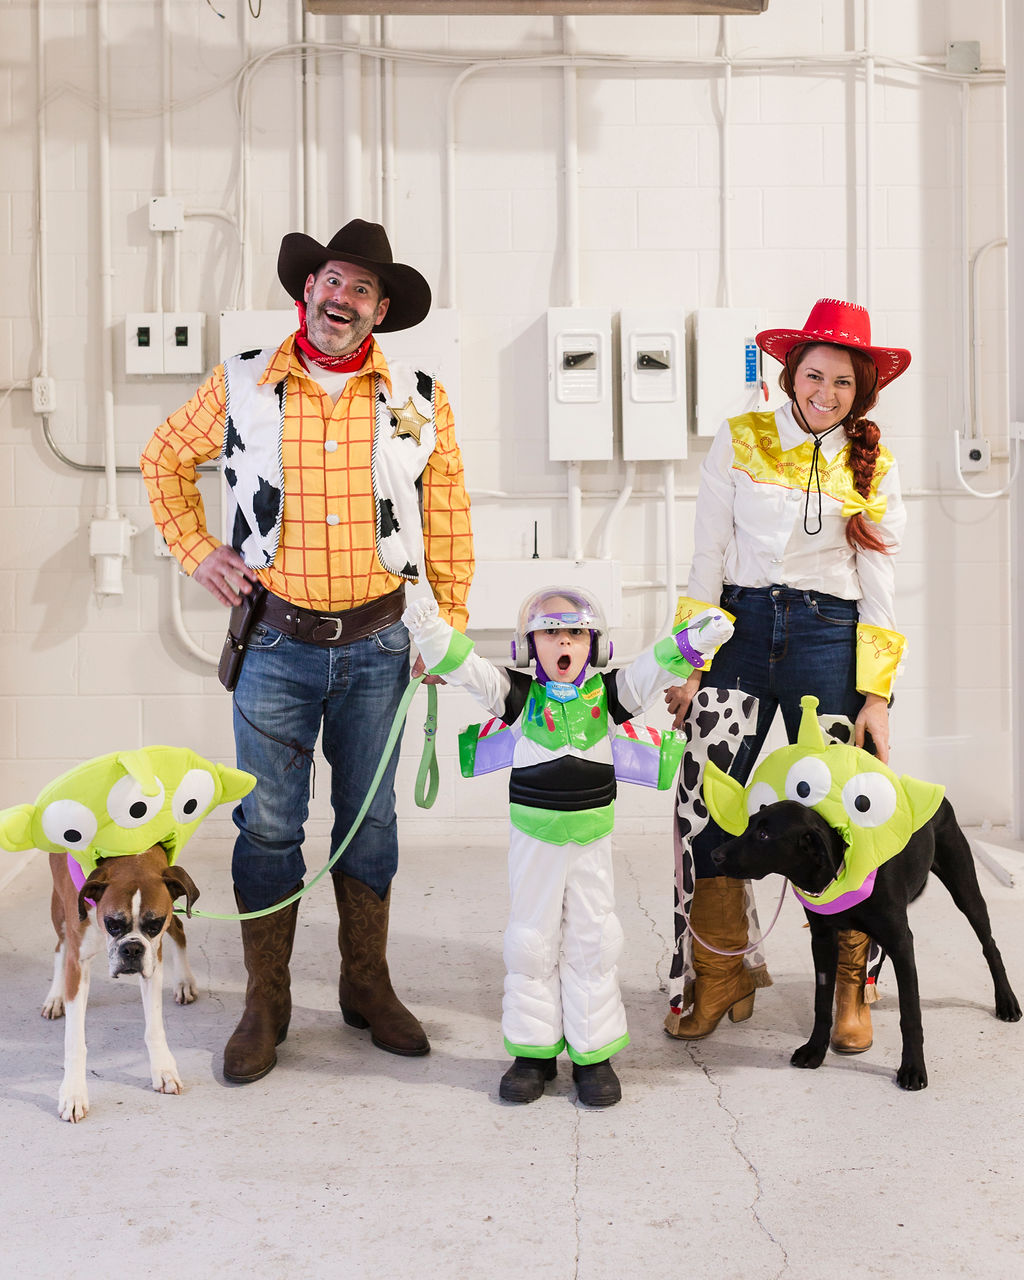 toy story halloween costumes-1